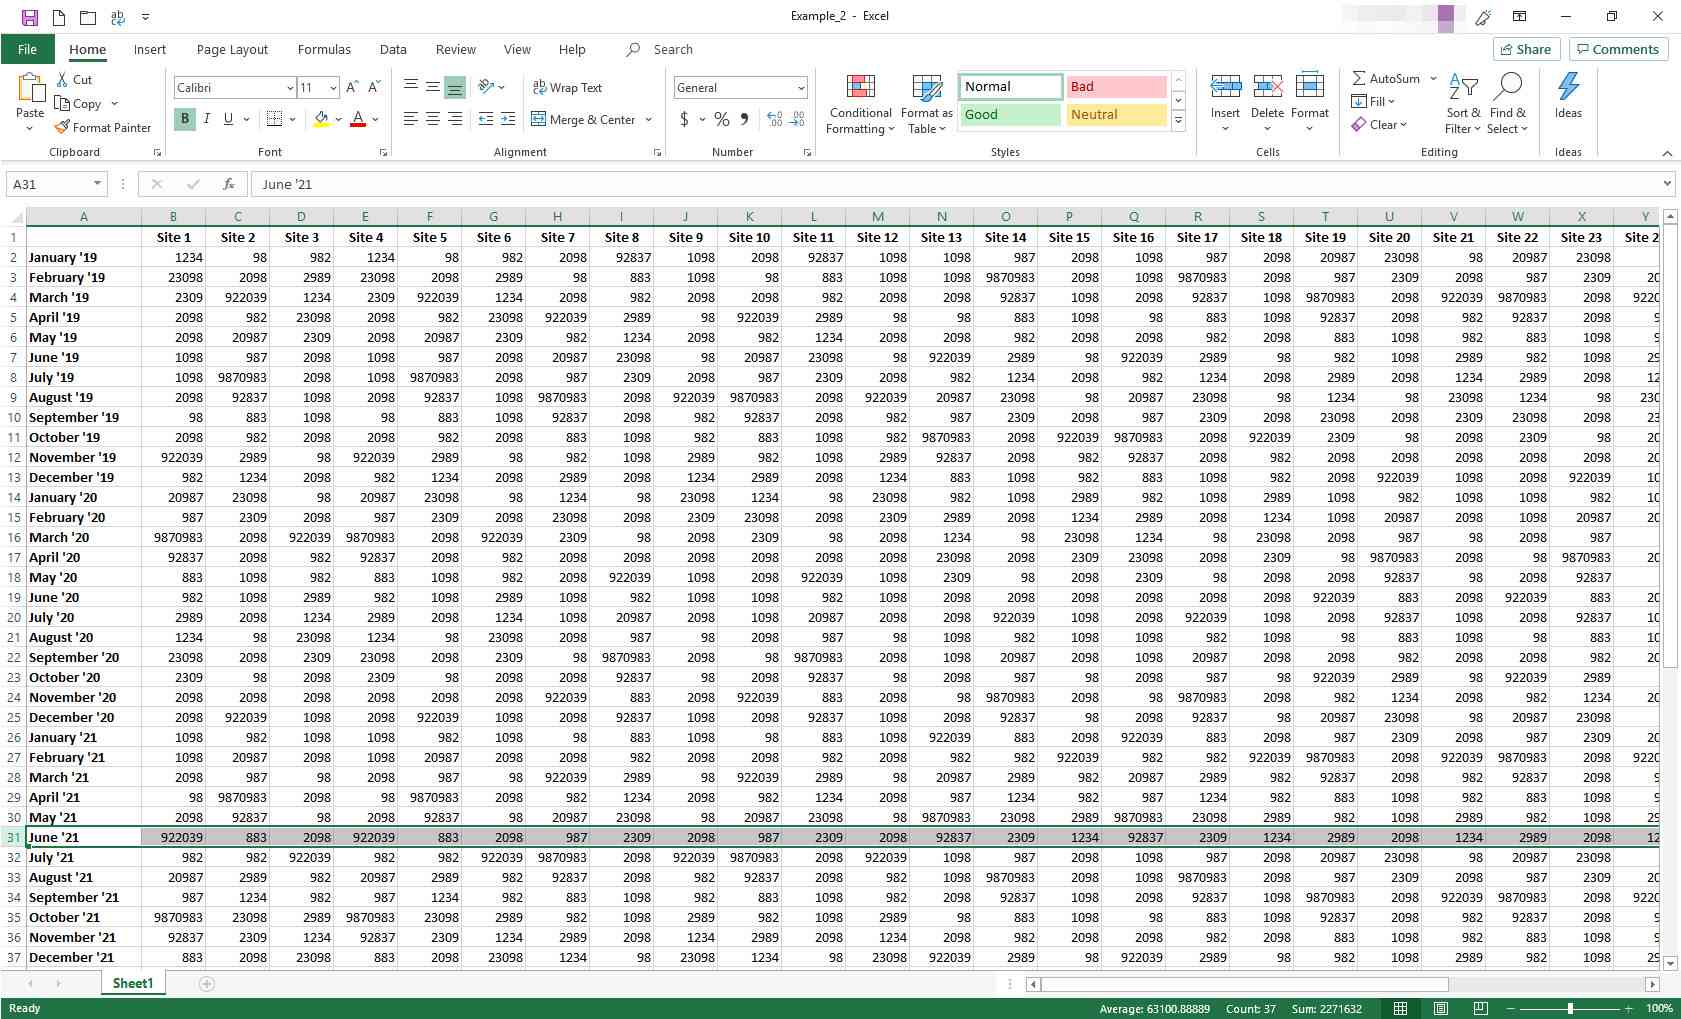 Excel worksheet with one row selected